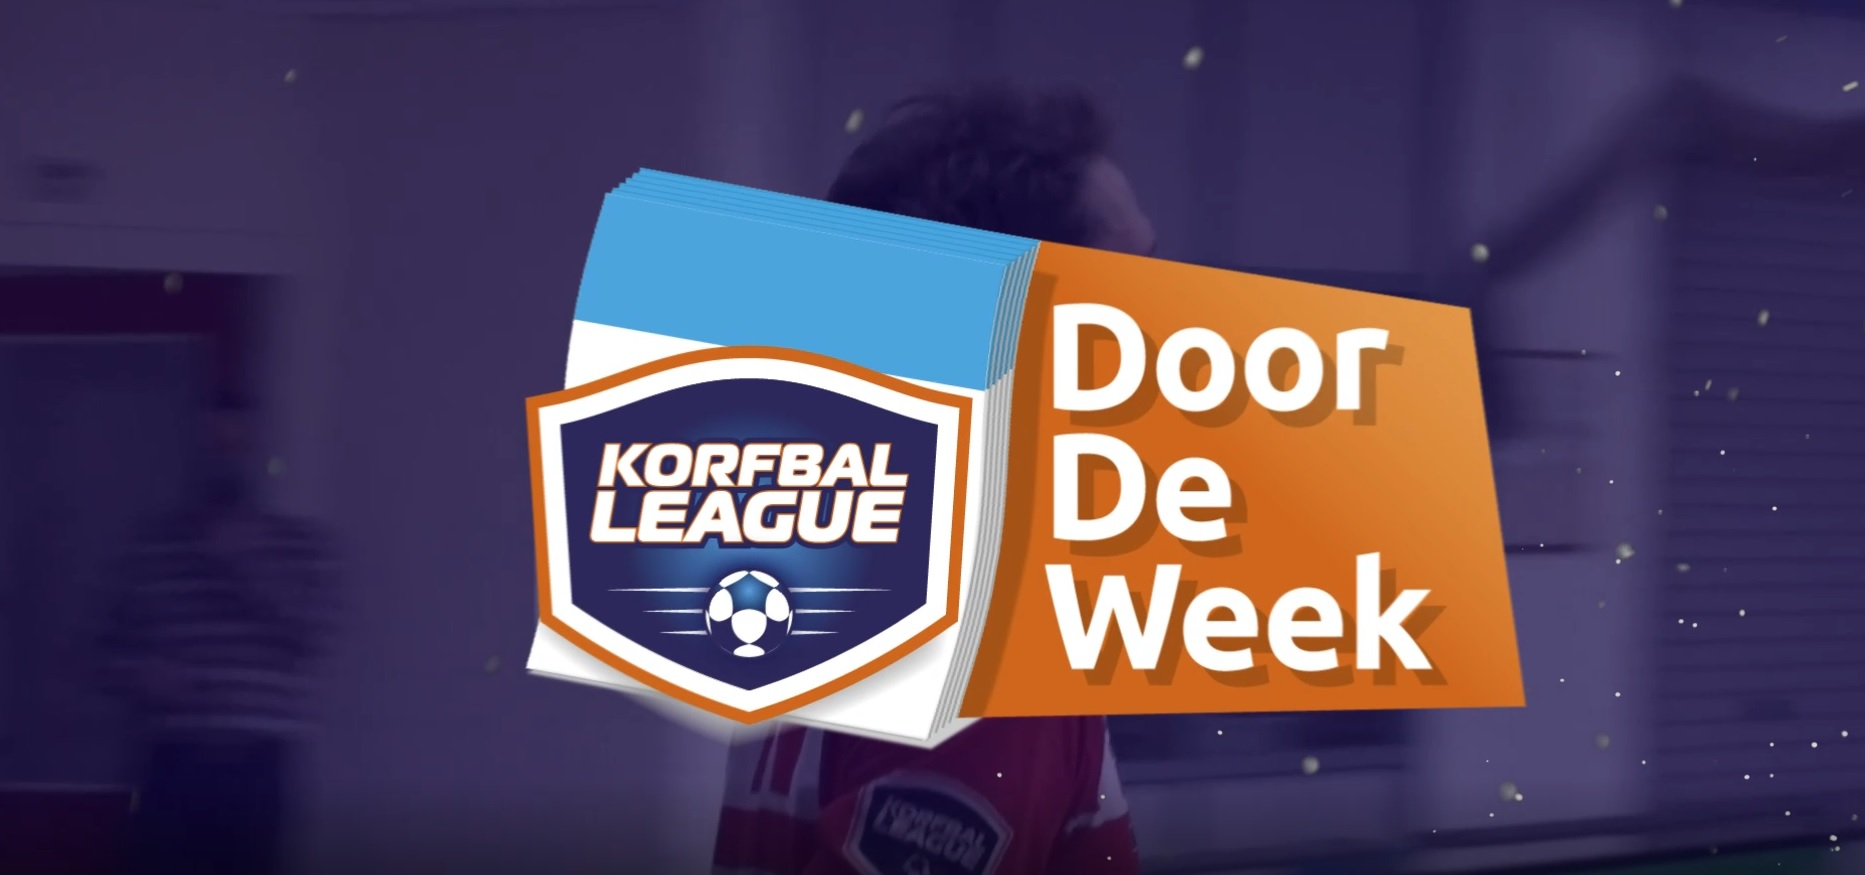 Tweede uitzending 'Korfbal League door de week'